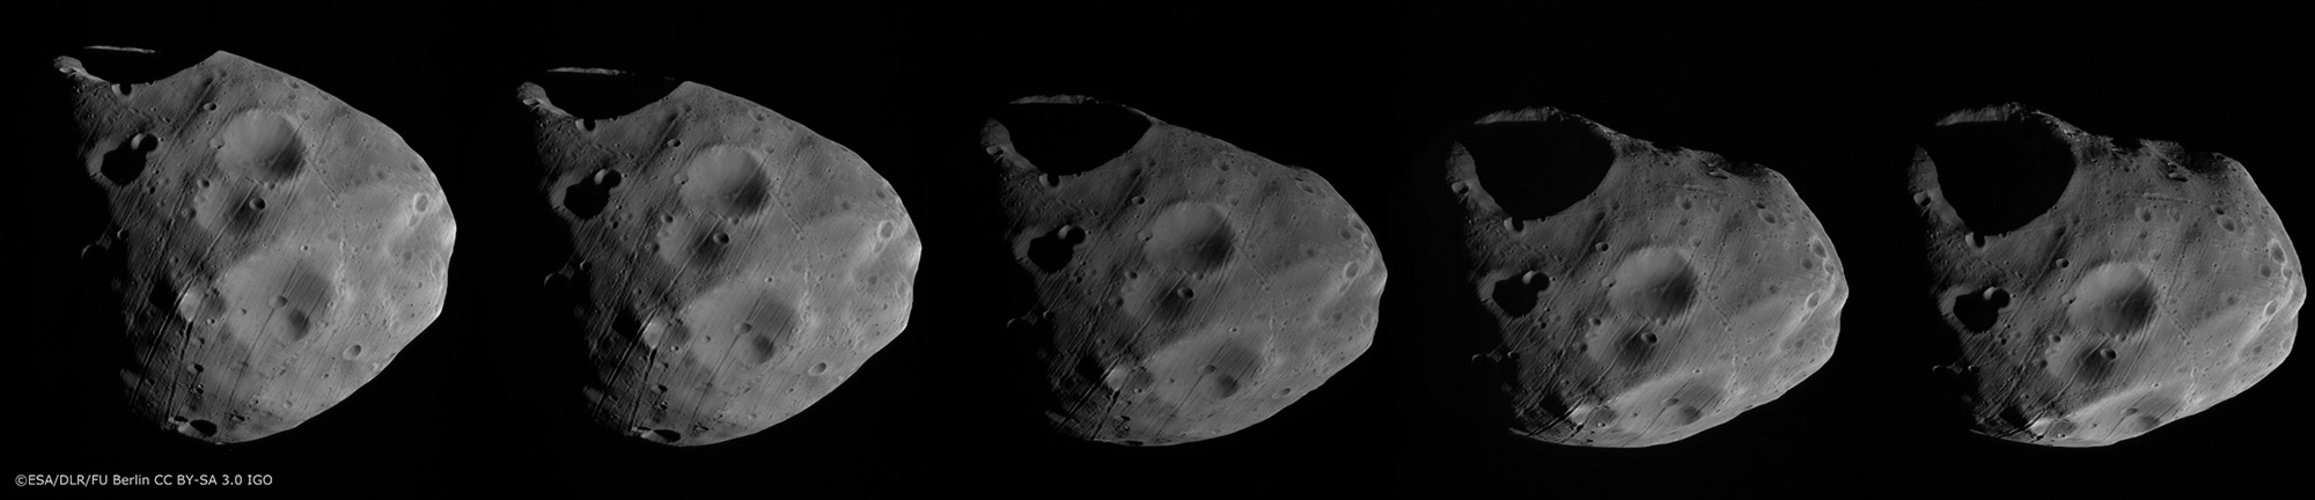 Phobos surface sequence